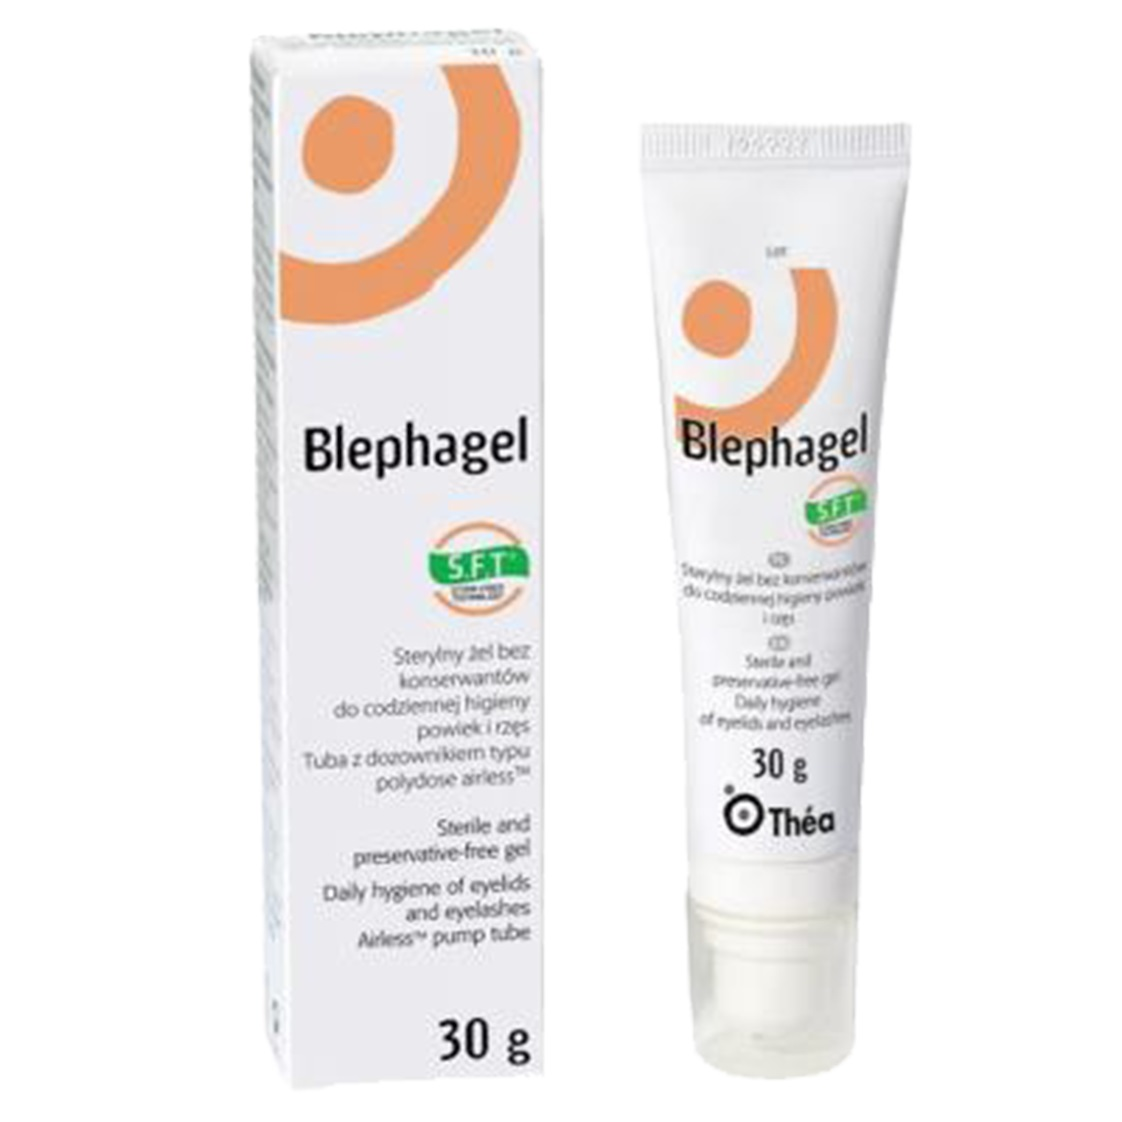 Blephagel (30 g) - oční gel